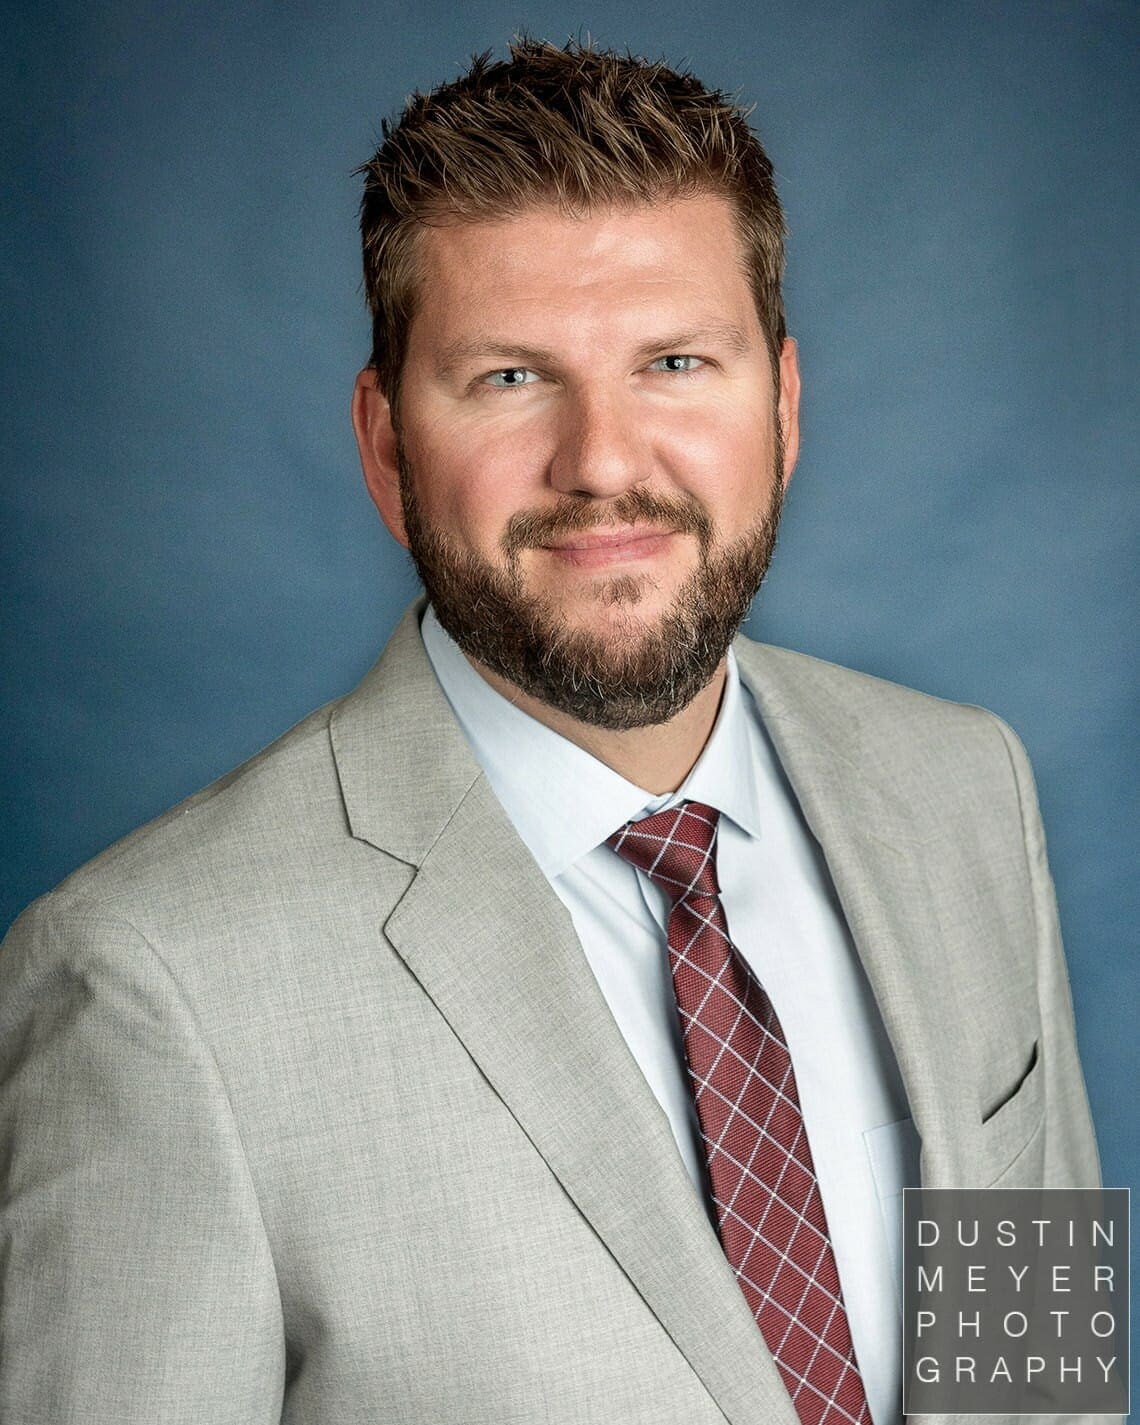 professional headshot tips male guy wearing a suit and tie with a blue backdrop for a business headshot